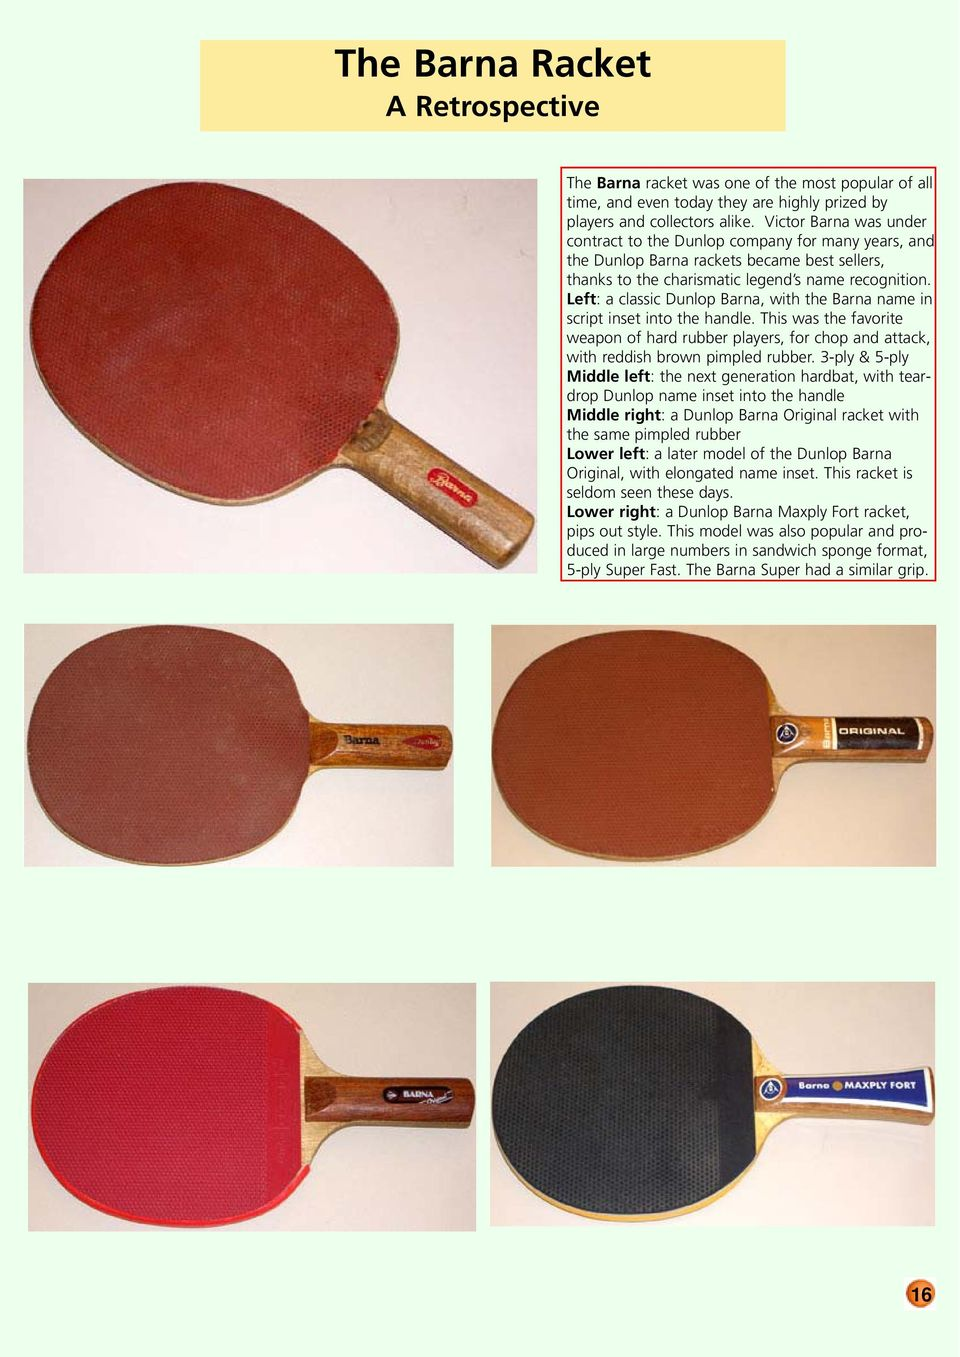 Left: a classic Dunlop Barna, with the Barna name in script inset into the handle. This was the favorite weapon of hard rubber players, for chop and attack, with reddish brown pimpled rubber.